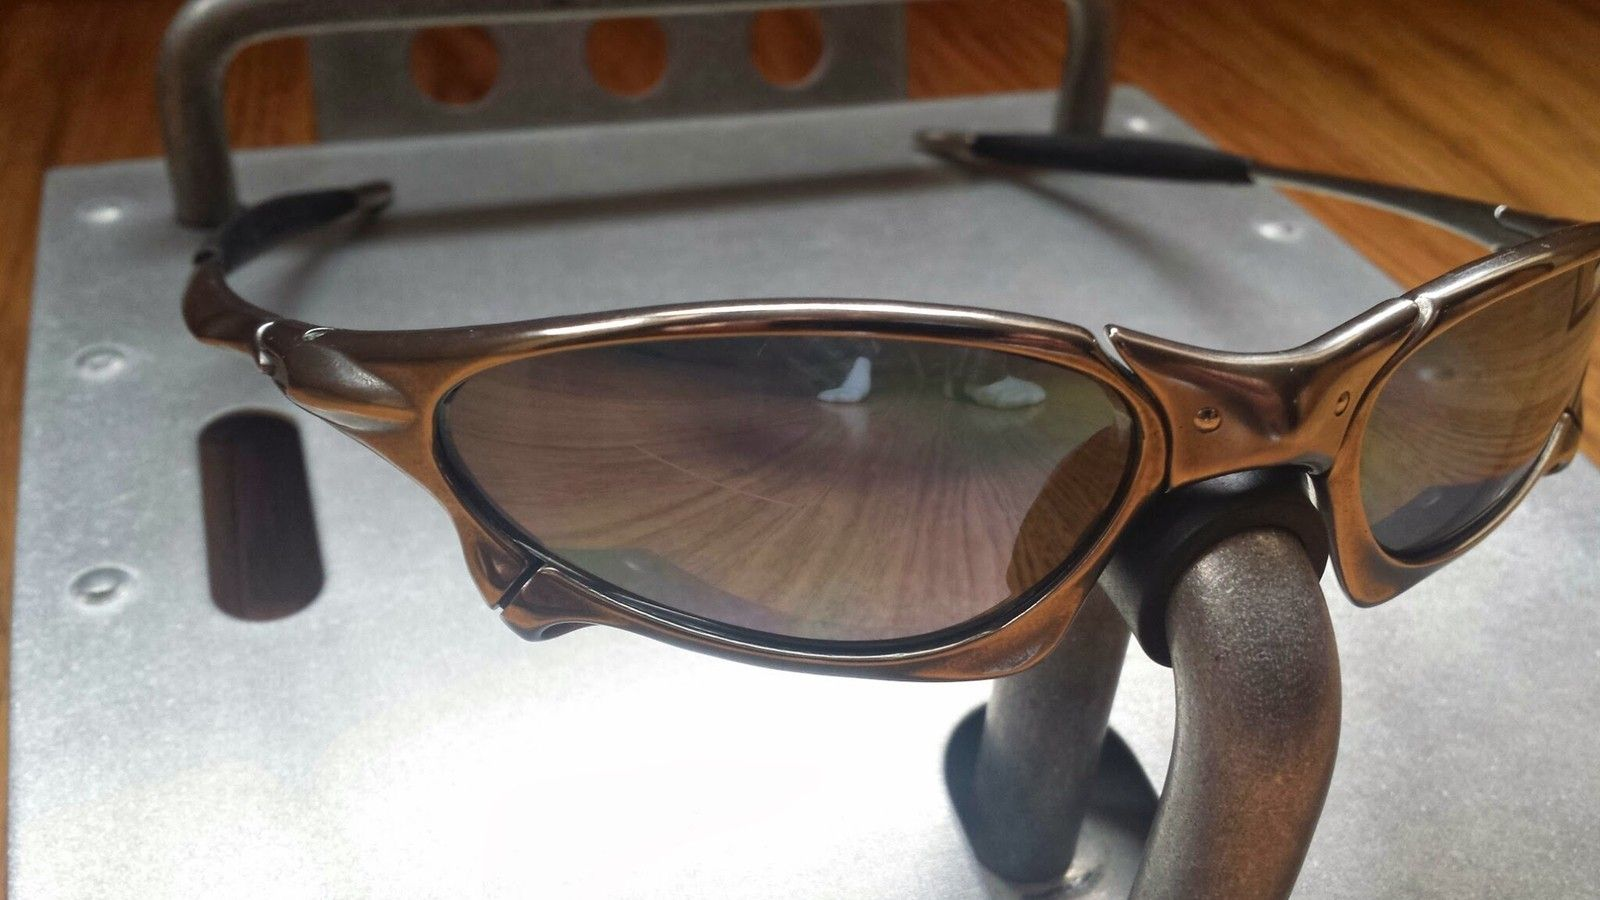 Polished Penny With New BIP And/or Original Black Lenses - Penny4.jpg